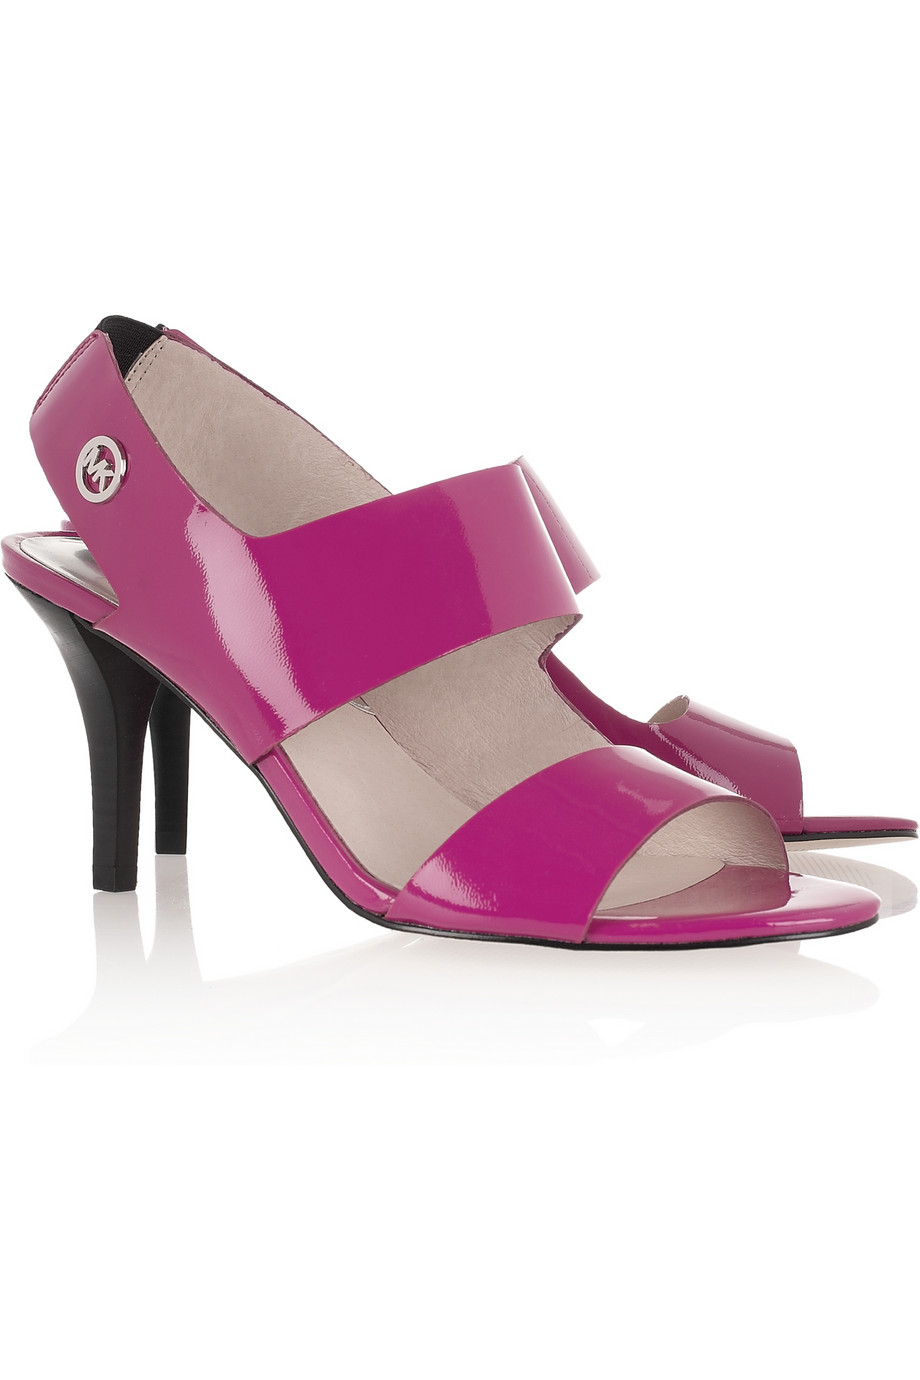 michael michael kors rochelle patent leather sandals in